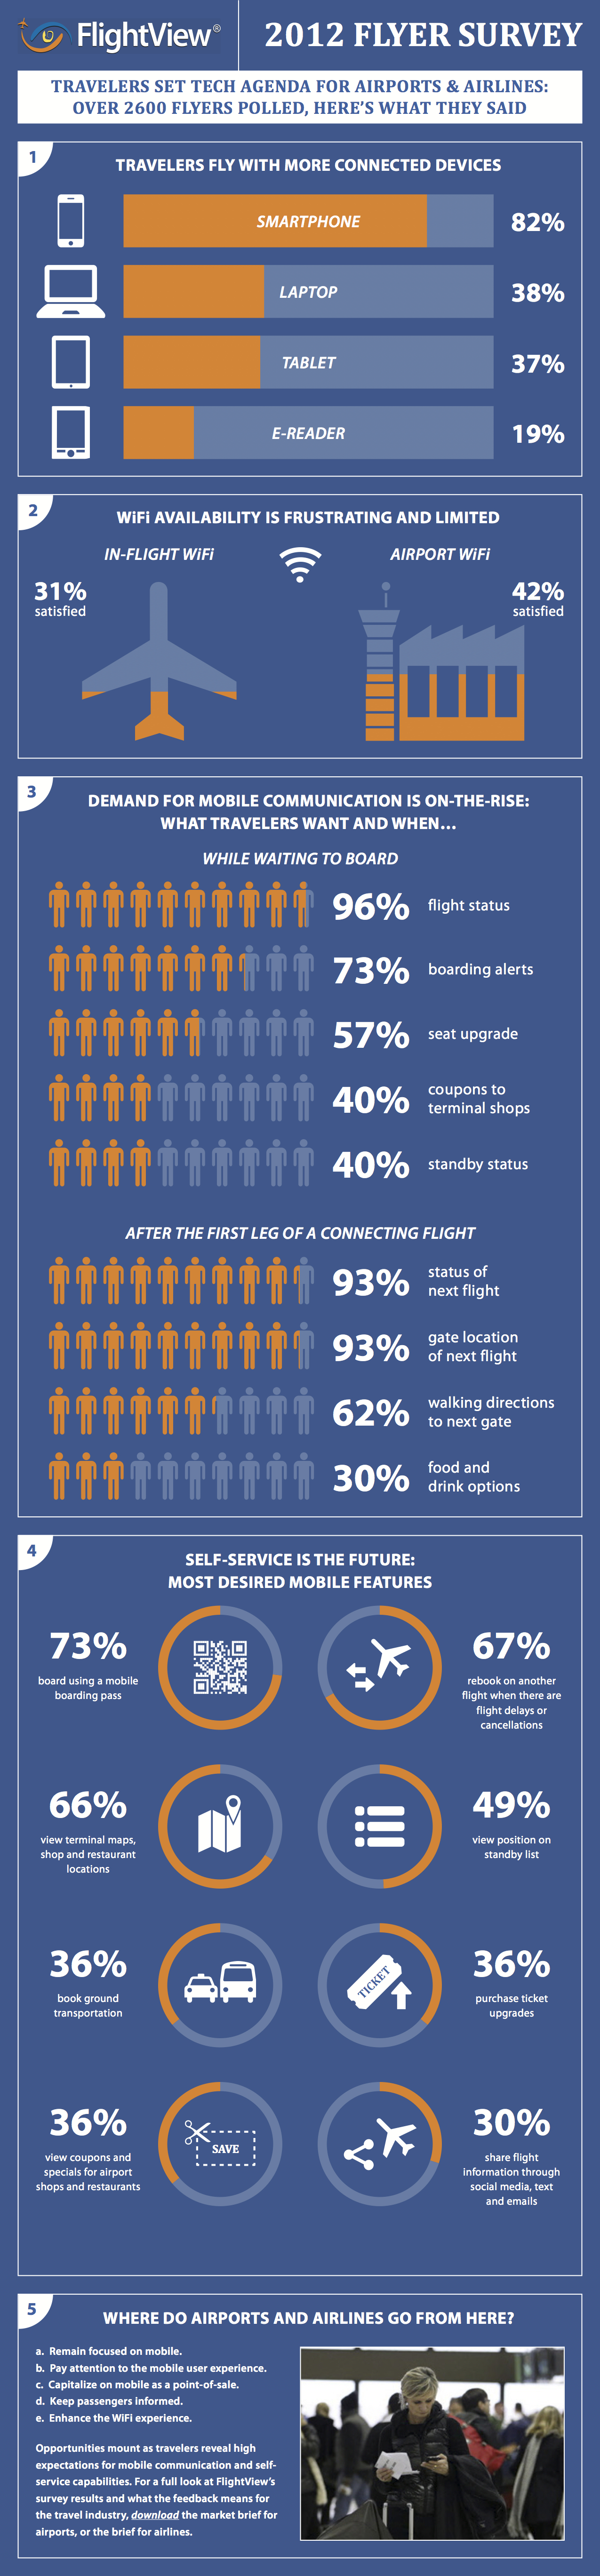 Travelers Want More Tech and Mobile Services From Airports, Airlines [INFOGRAPHIC] #in #socialmedia